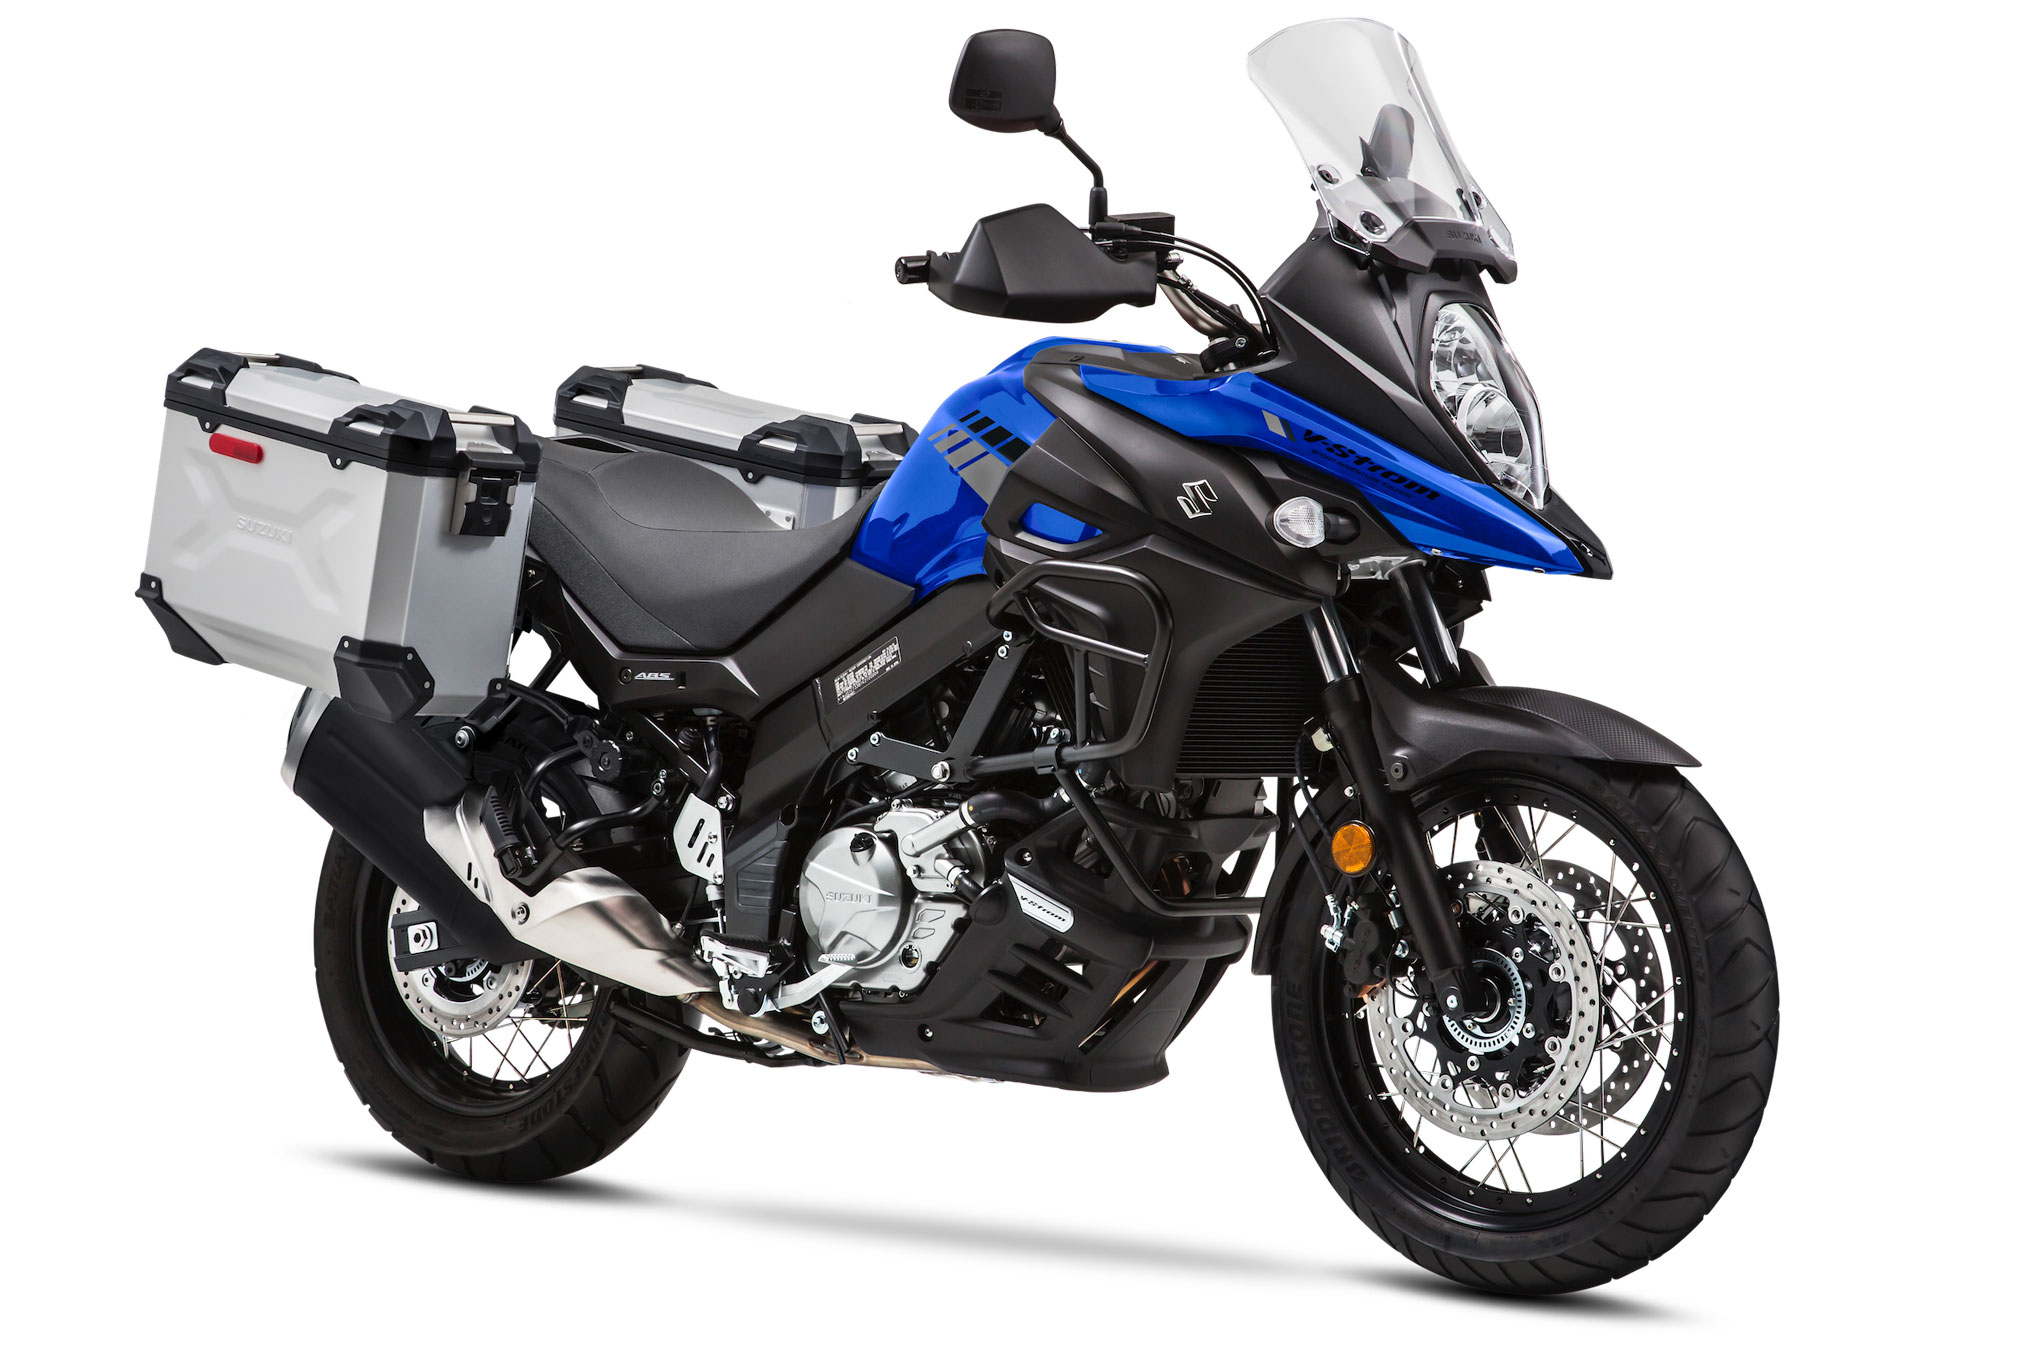 2020 Suzuki V-Strom 650XT Adventure Guide • Total Motorcycle